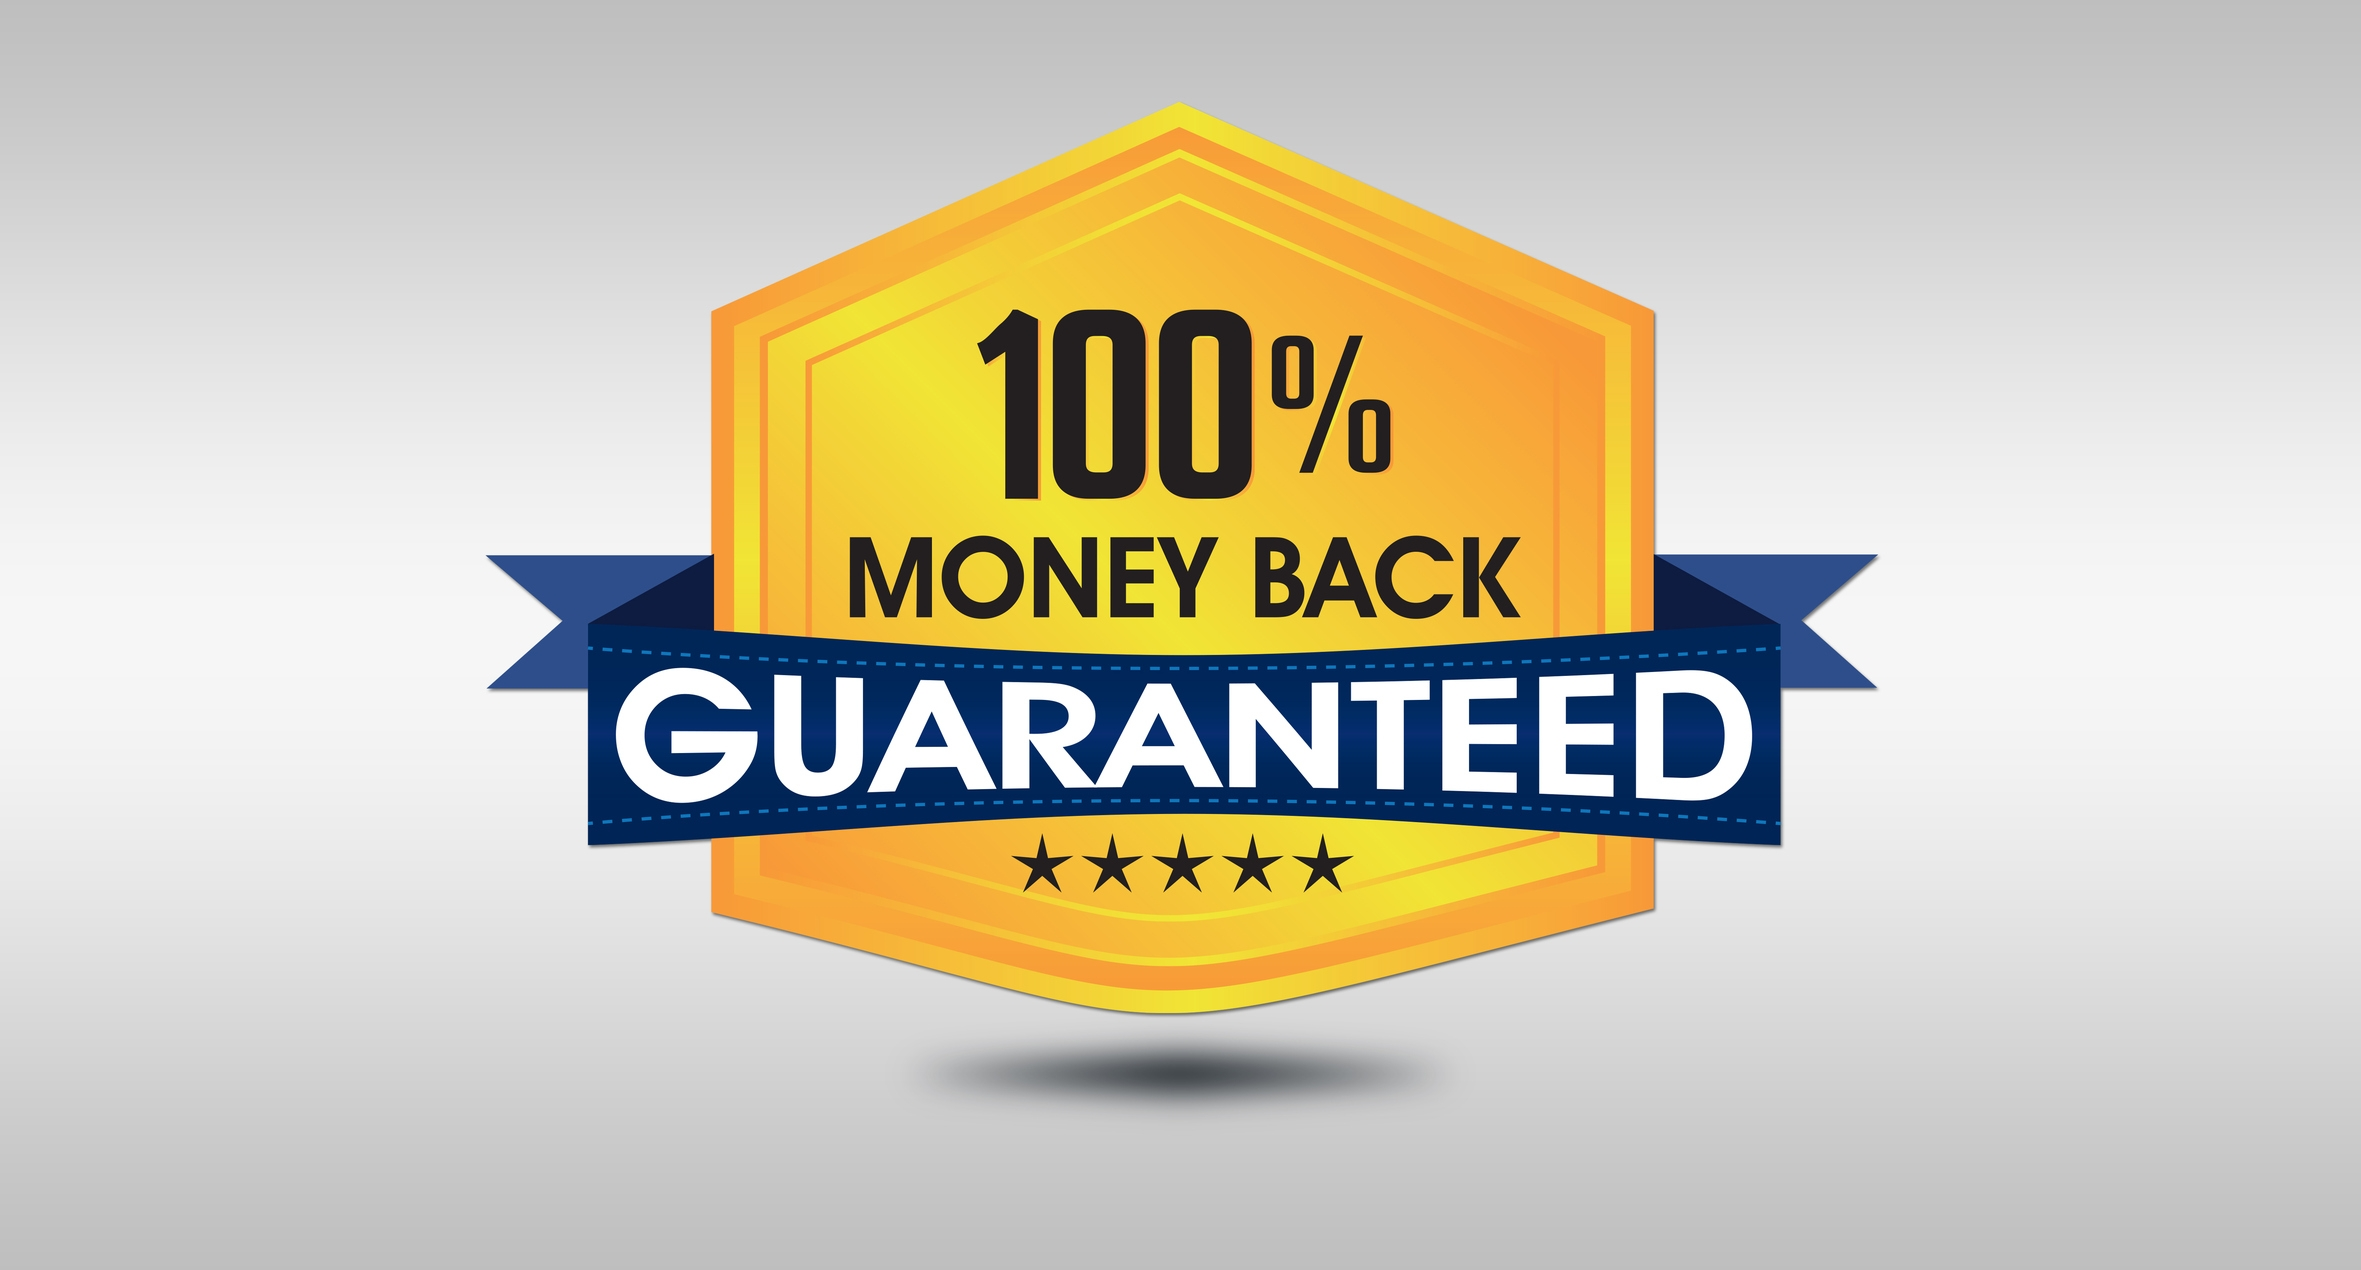 Our land includes a 100% satisfaction, 90-Day Money Back Guarantee.  If you are not totally satisfied with purchase of land as described, we will refund your money in full or exchange it for any other land in our portfolio. -